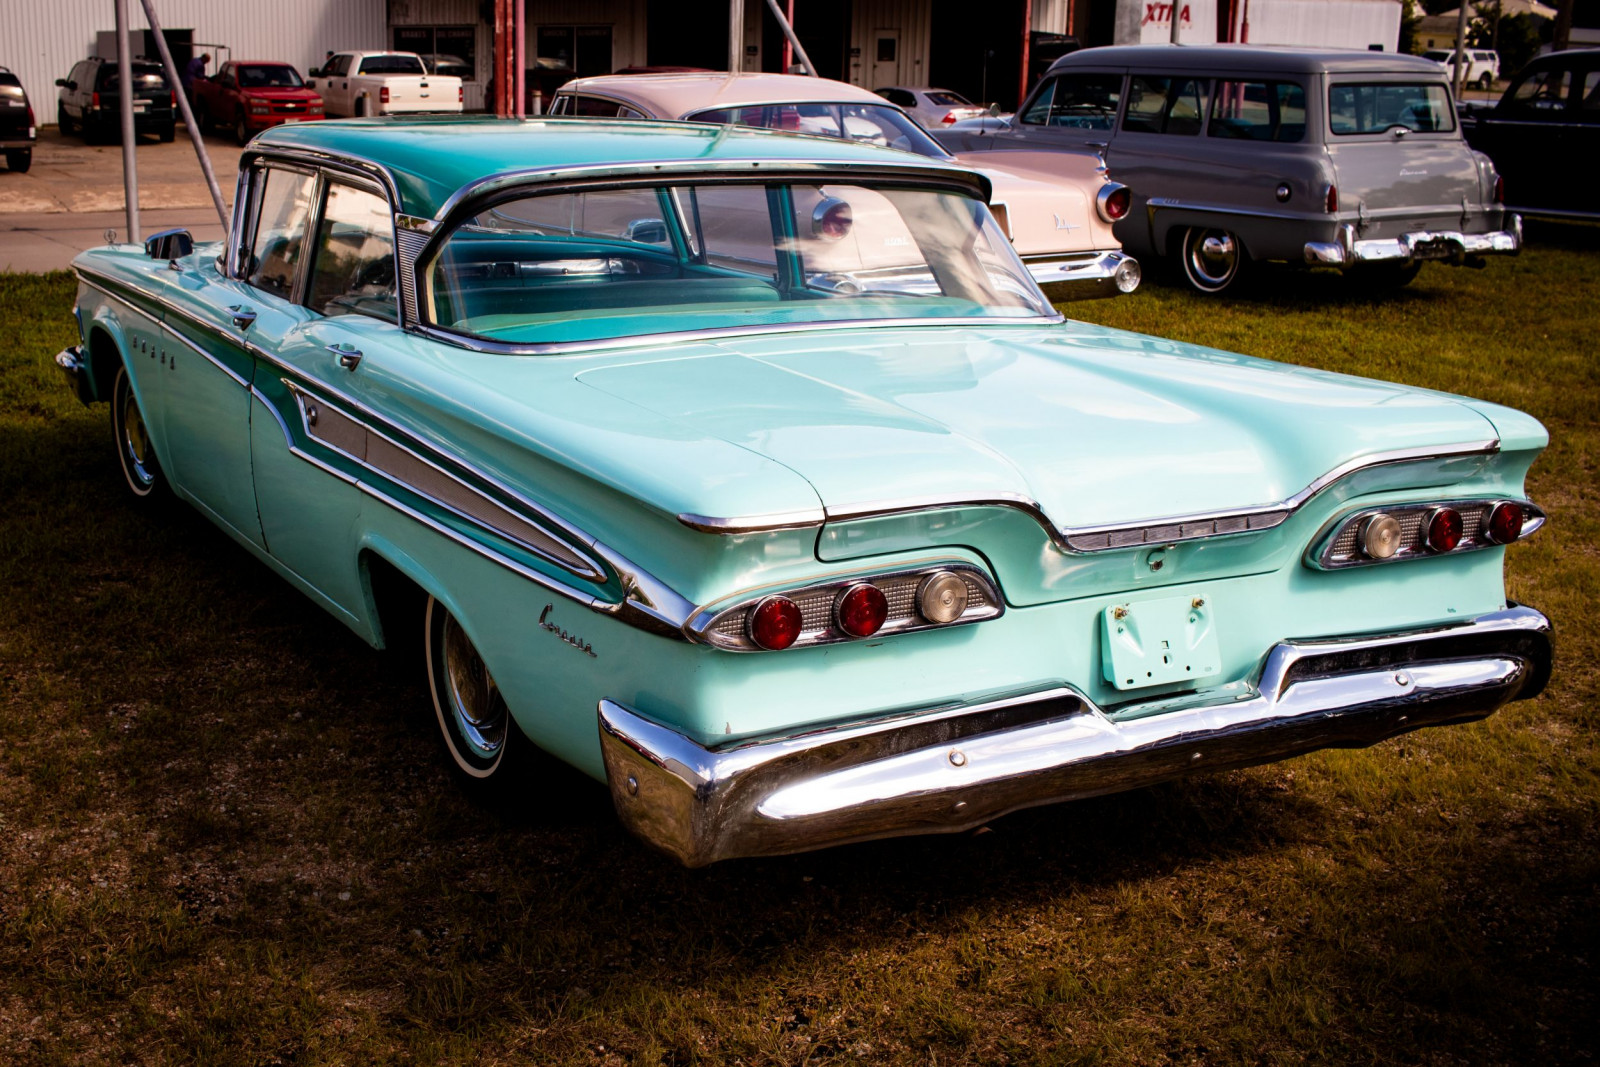 1959 Edsel Corsair 4dr Sedan - Image 7